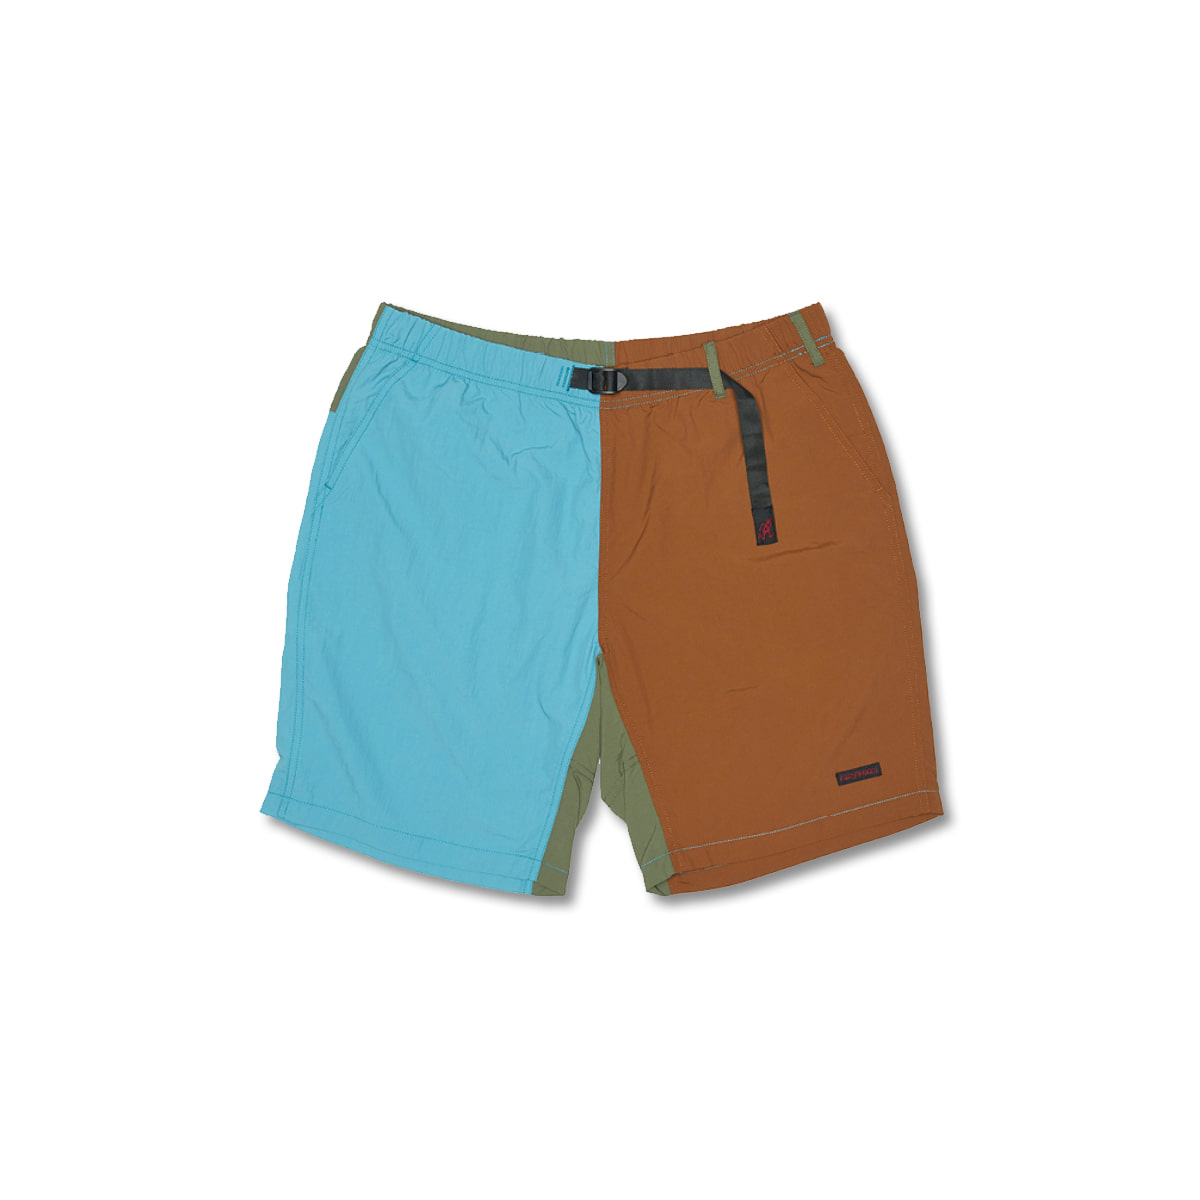 [GRAMICCI] SHELL PACKABLE SHORTS 'AQUA X MOCHA'